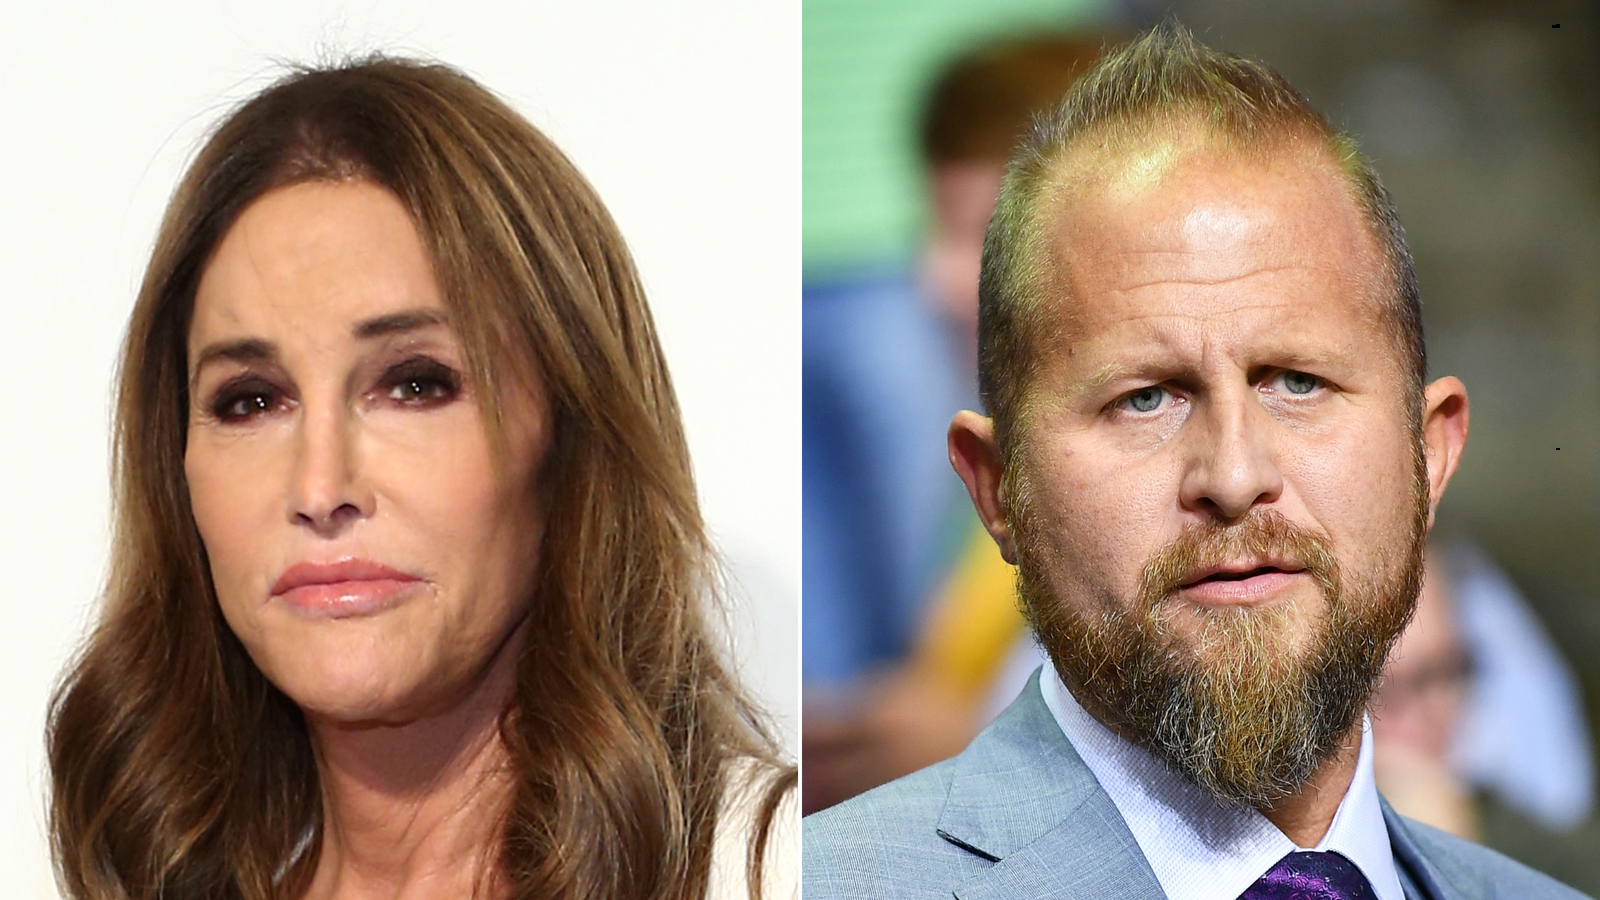 Caitlyn Jenner getting advice from ex-Trump campaign manager Parscale on possible California governor bid